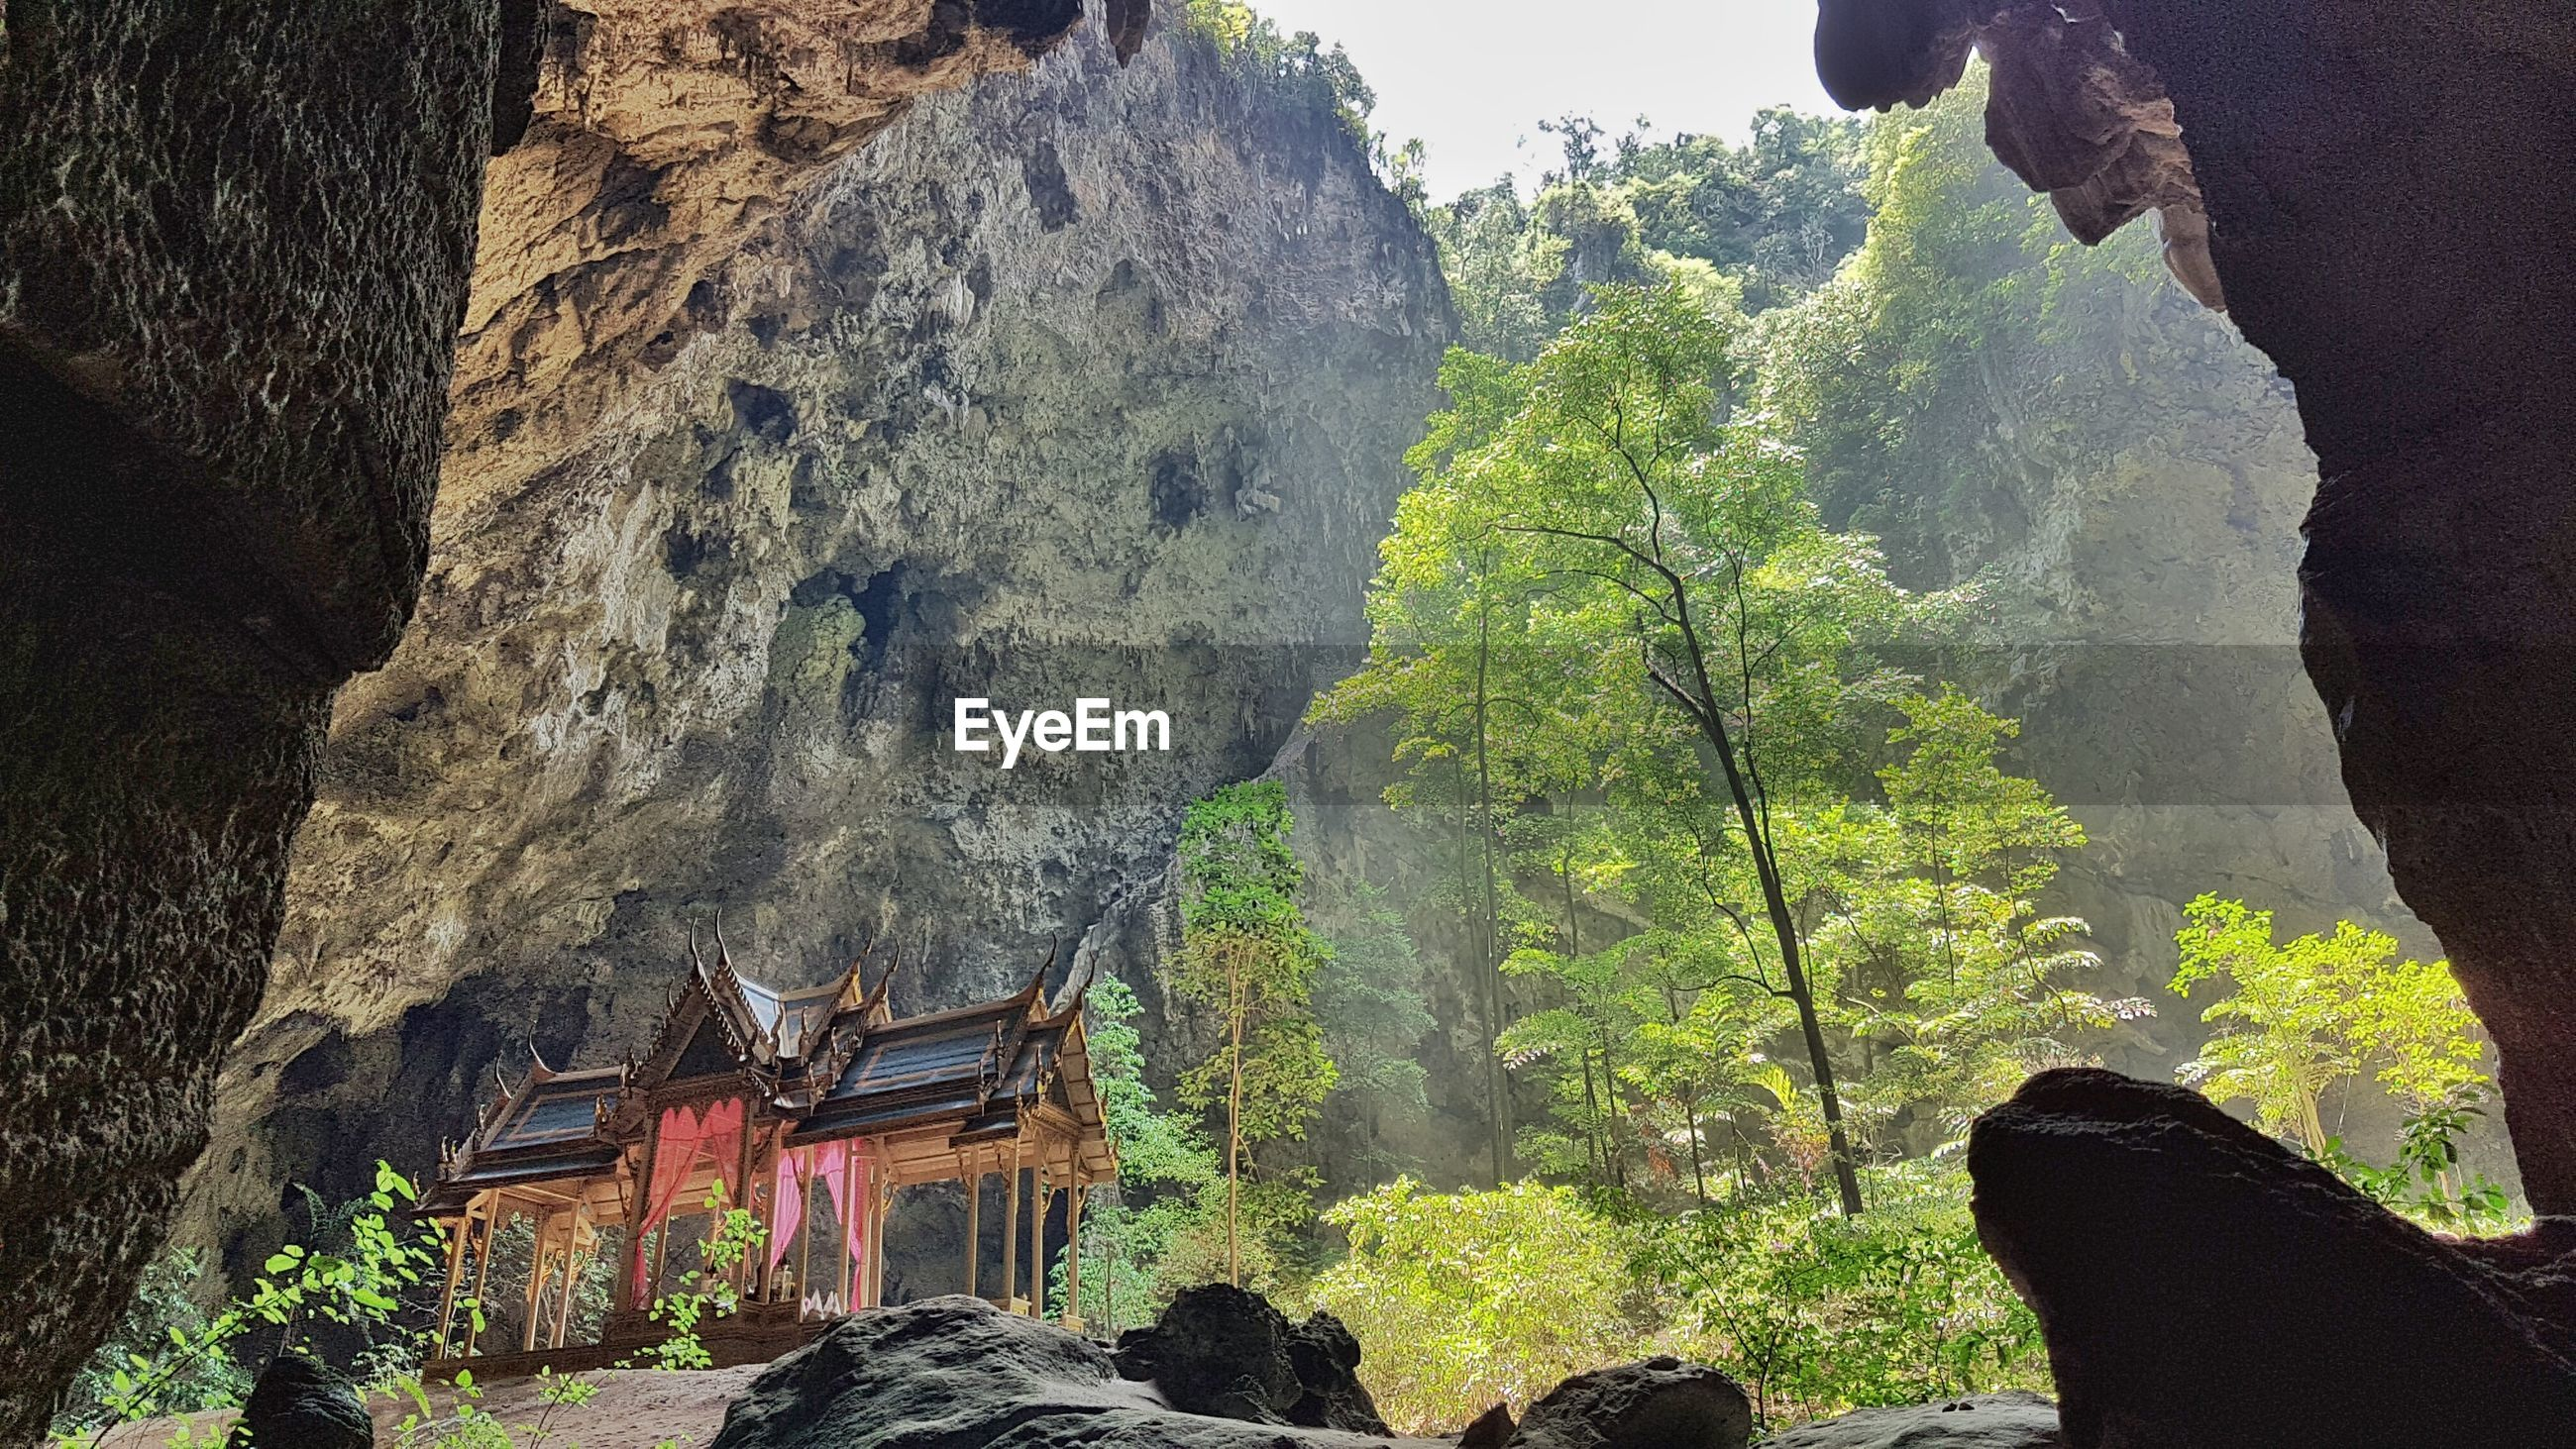 SCENIC VIEW OF CAVE AND MOUNTAINS